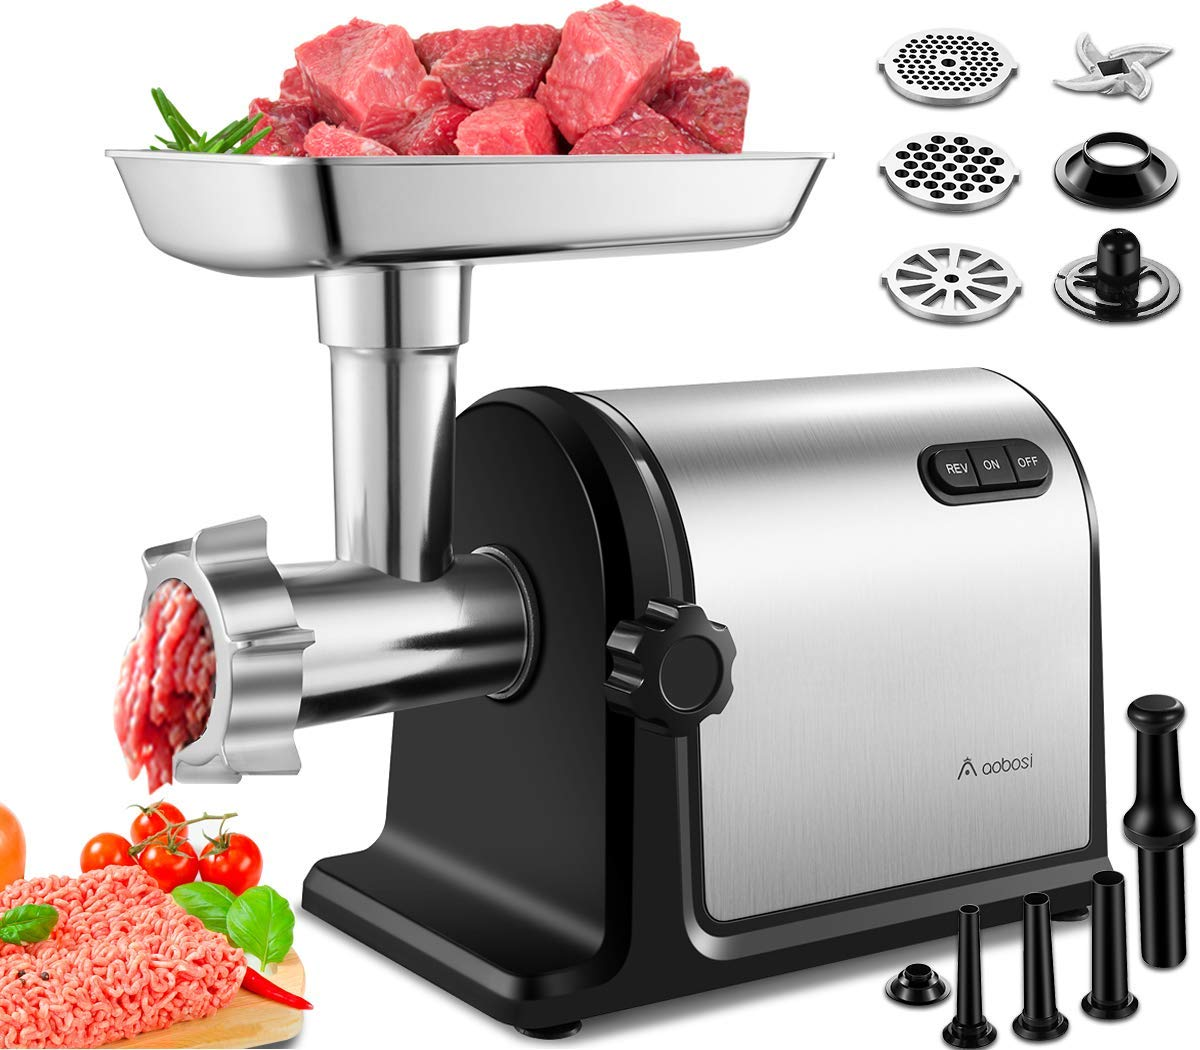 Aobosi Electric Meat Grinder 2000W Max Heavy Duty Stainless Steel Meat Mincer with 3 Grinding Plates, 3 Sausage Stuffer Tubes Kubbe Attachments,Easy One-Button Control